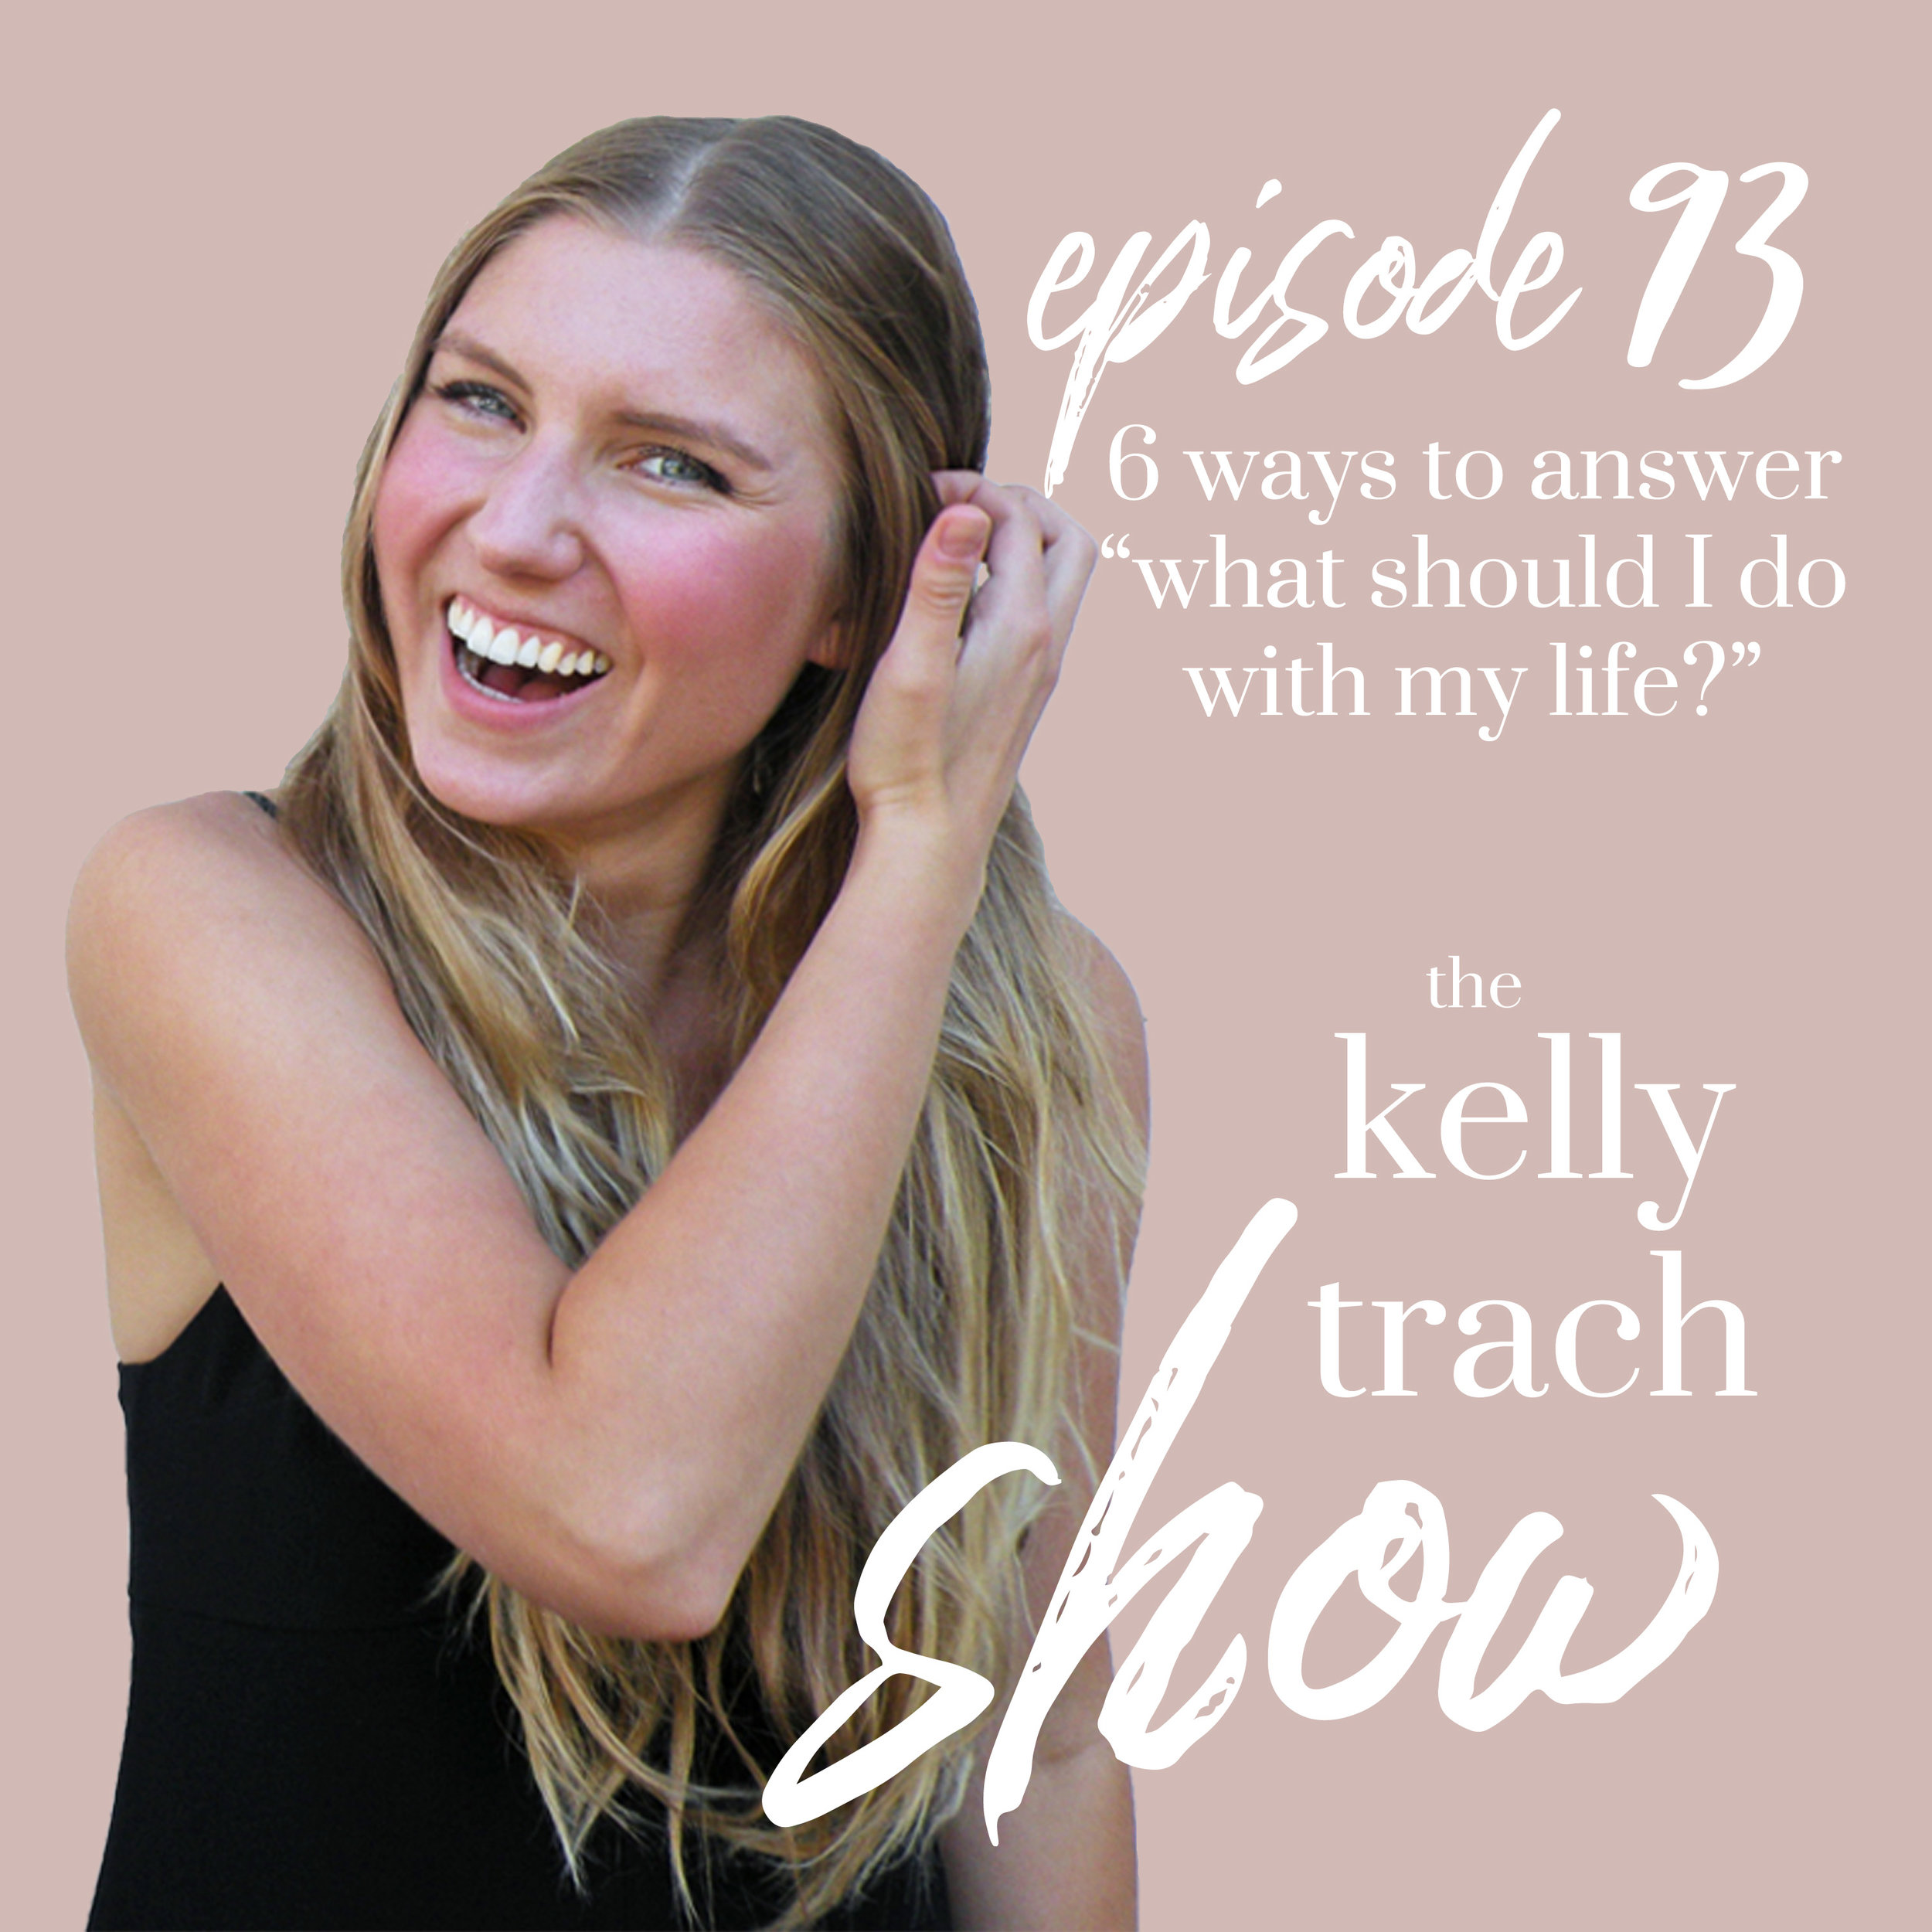 93 - 6 Ways to Answer What Should I Do with My Life - The Kelly Trach Show Podcast.jpg